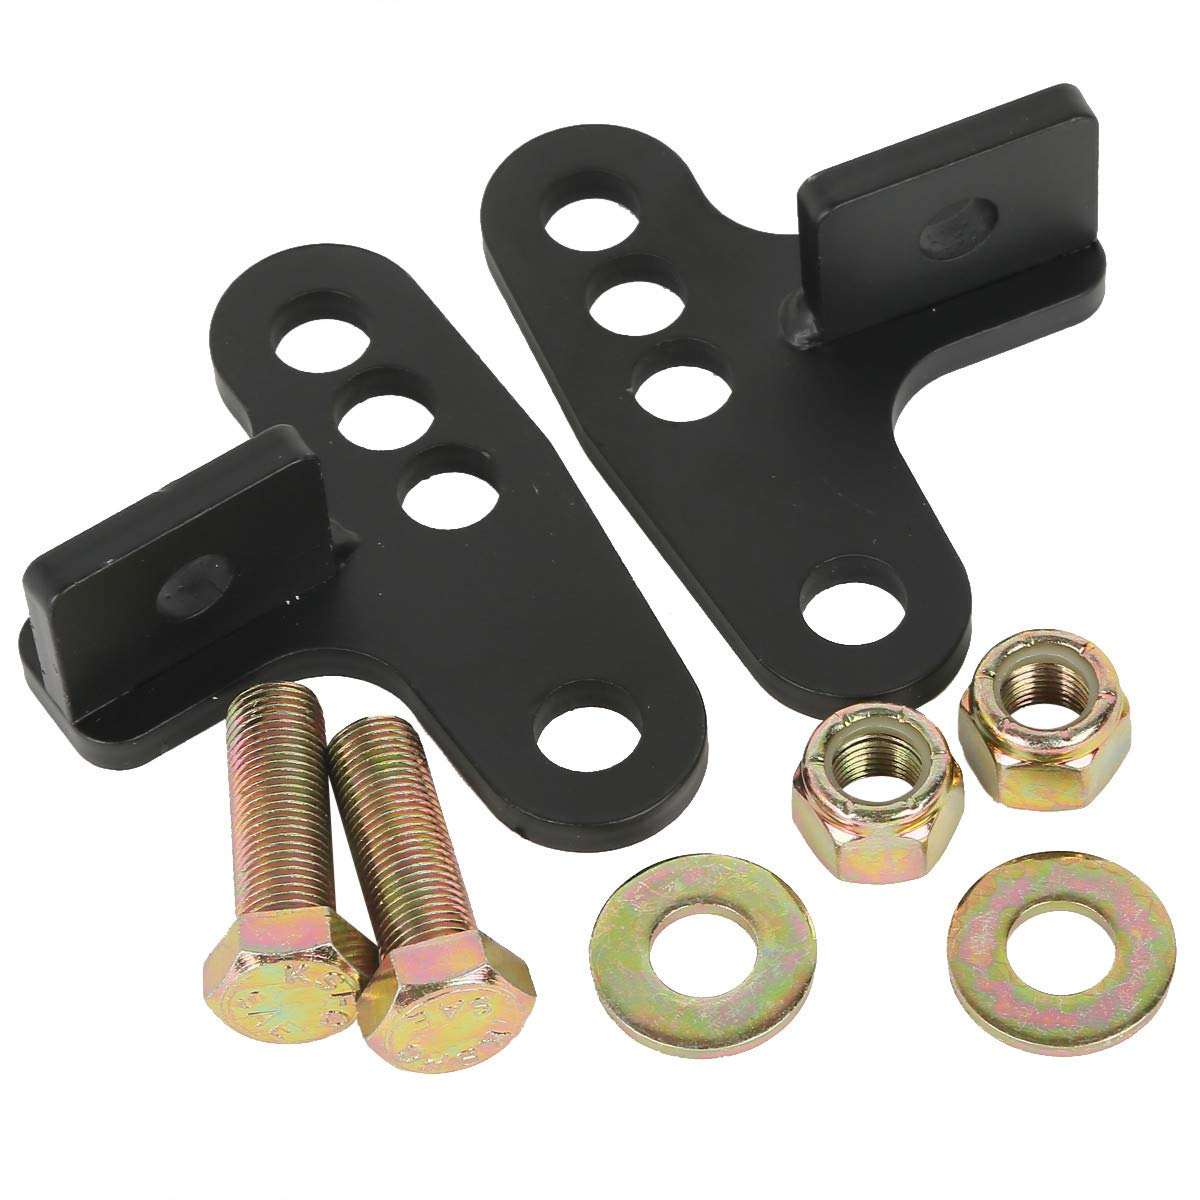 Black Rear Adjustable 1 To 3 Lowering Kit Fits For Harley Davidson Sportster 883 1200 1989 1990 1991 1992 1993 1994 1995 1996 1997 1998 1999